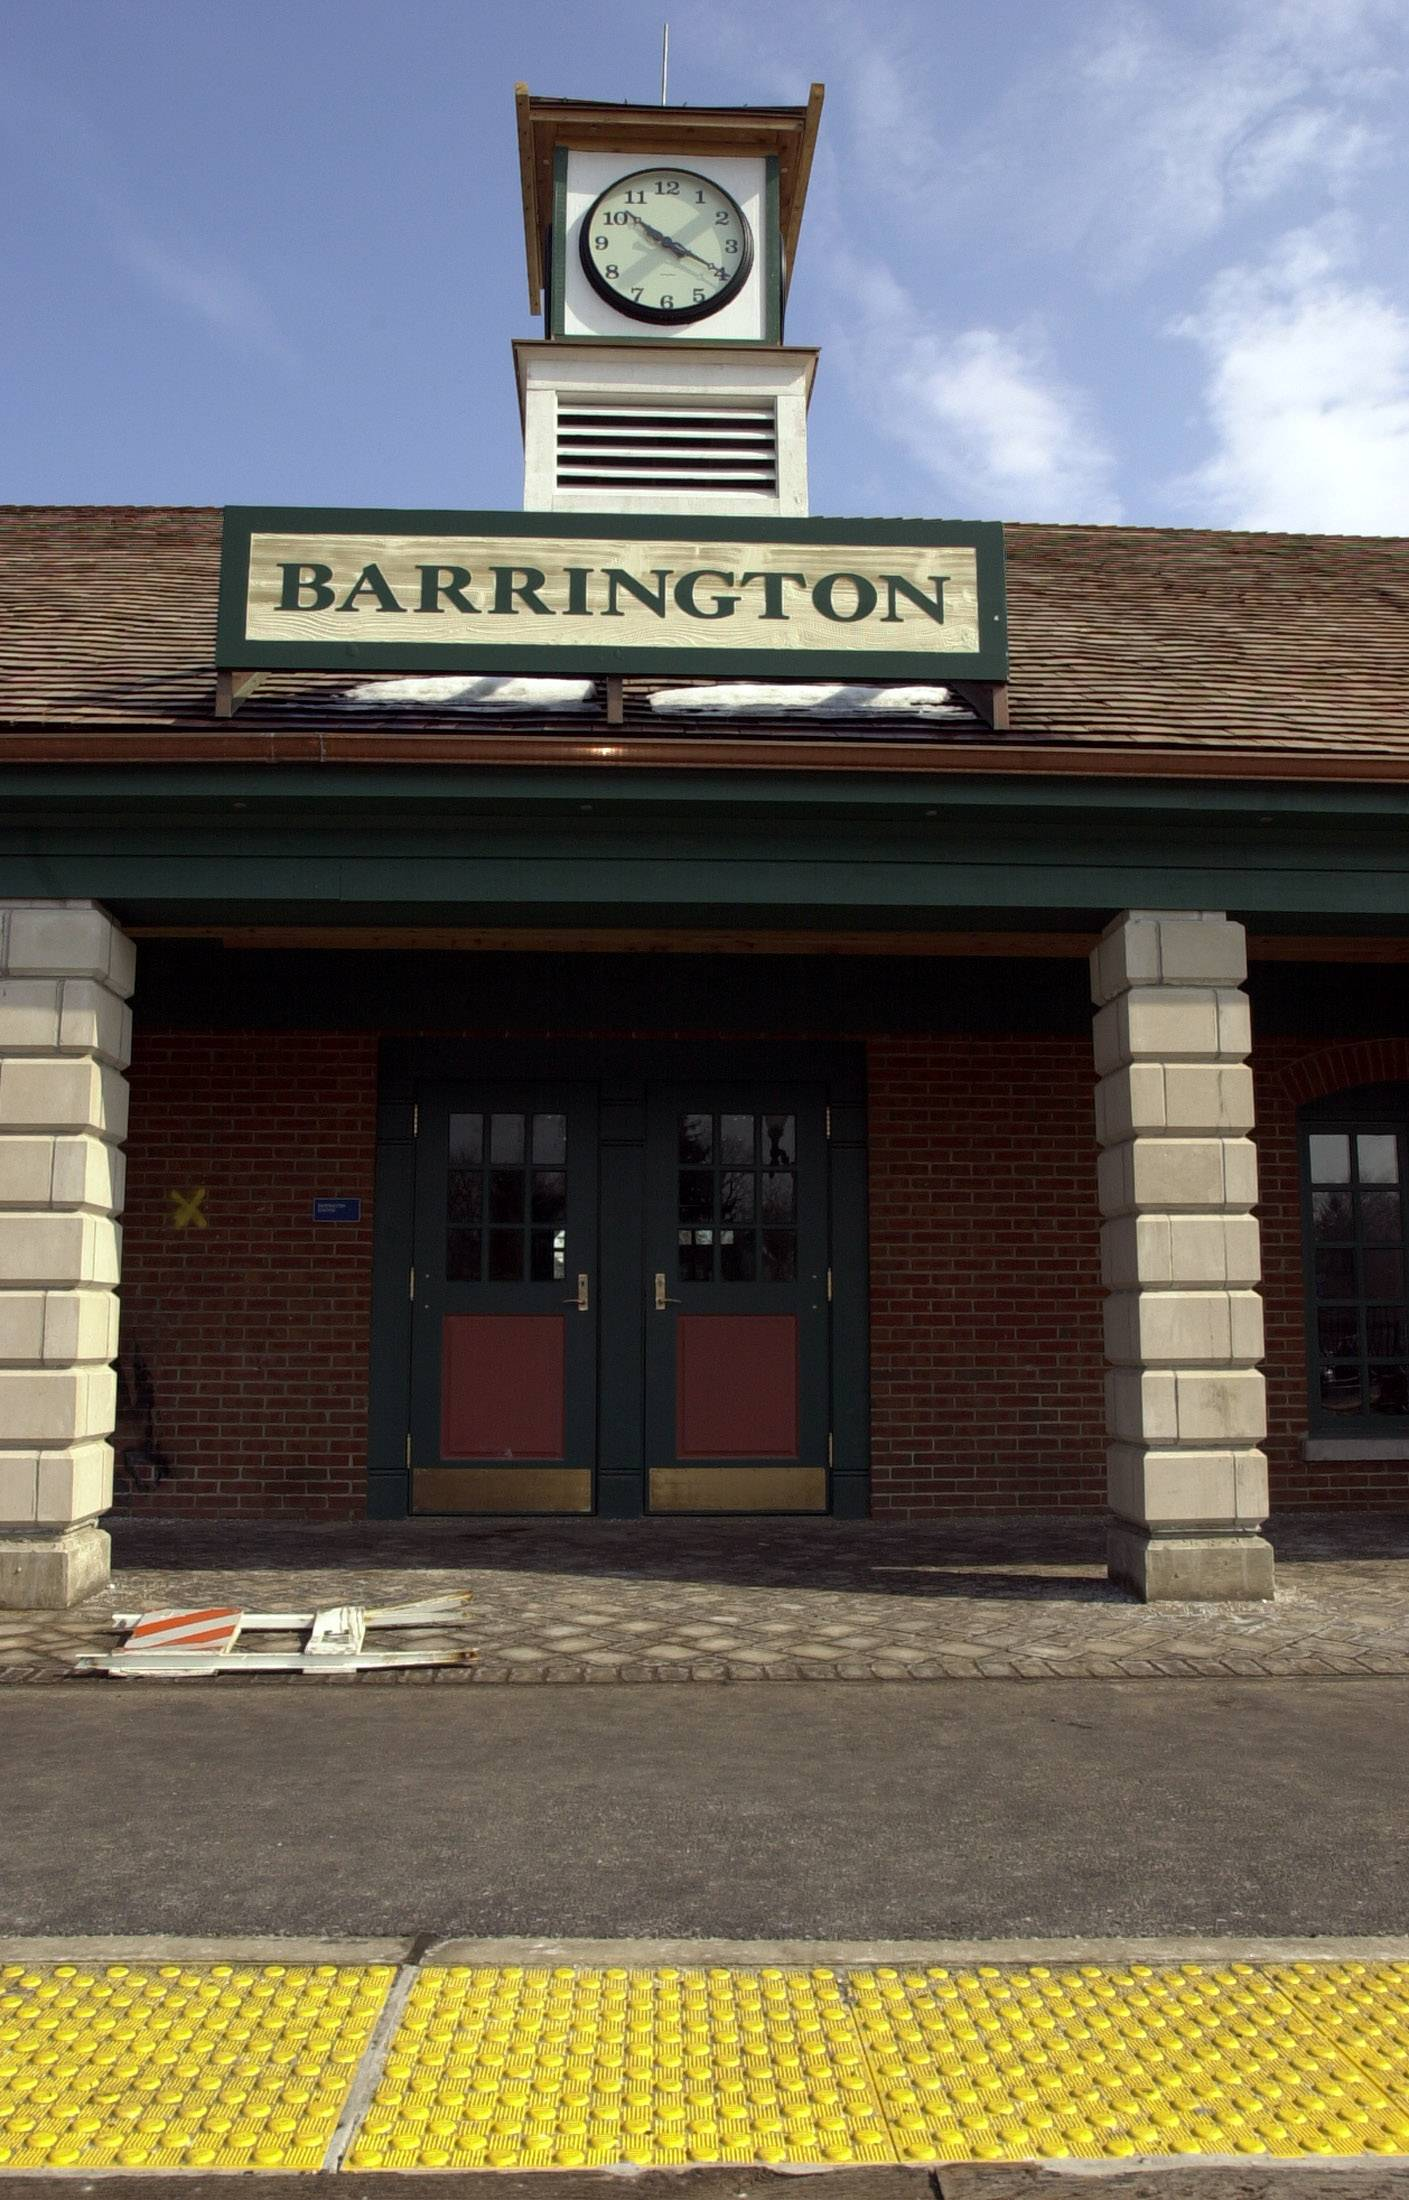 Renovations to the exterior of the Barrington Metra station began Monday, just hours before village leaders got the good news that costs associated with the work would be lower than expected. Workers will rip up the crumbling brick walkways and replace them with colored, stamped concrete.